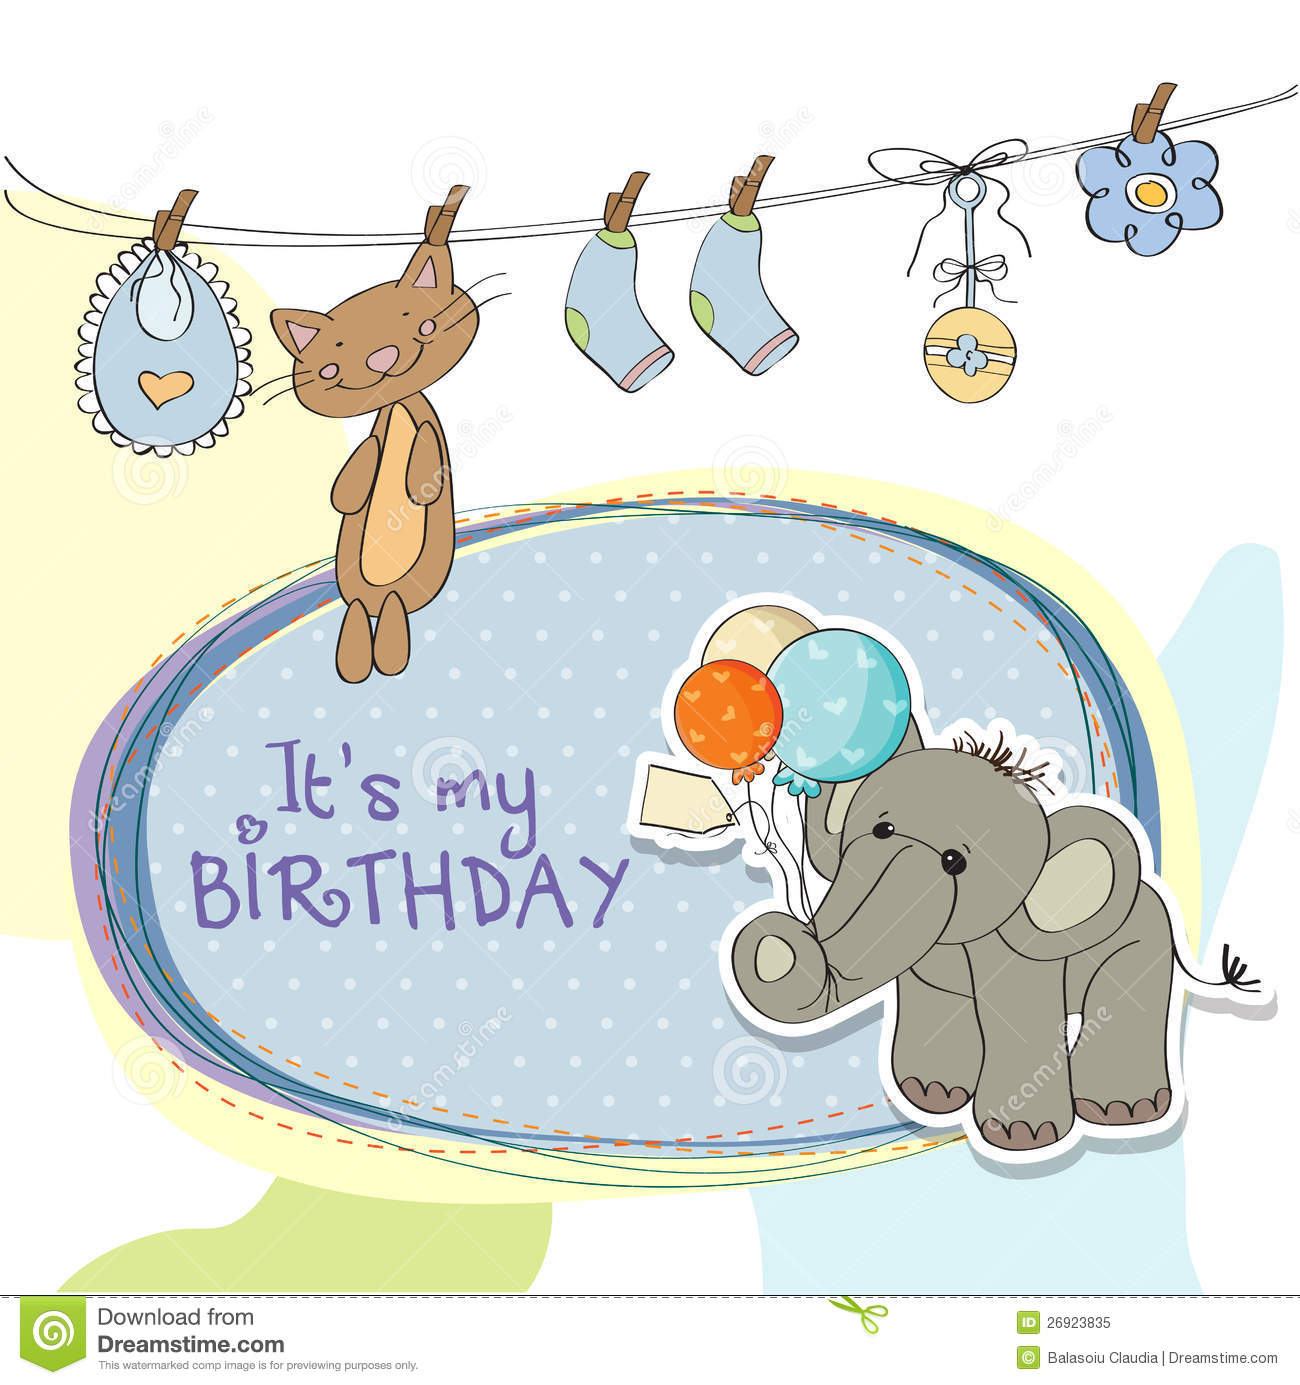 baby boy birthday card with elephant royalty free stock photo, Birthday card